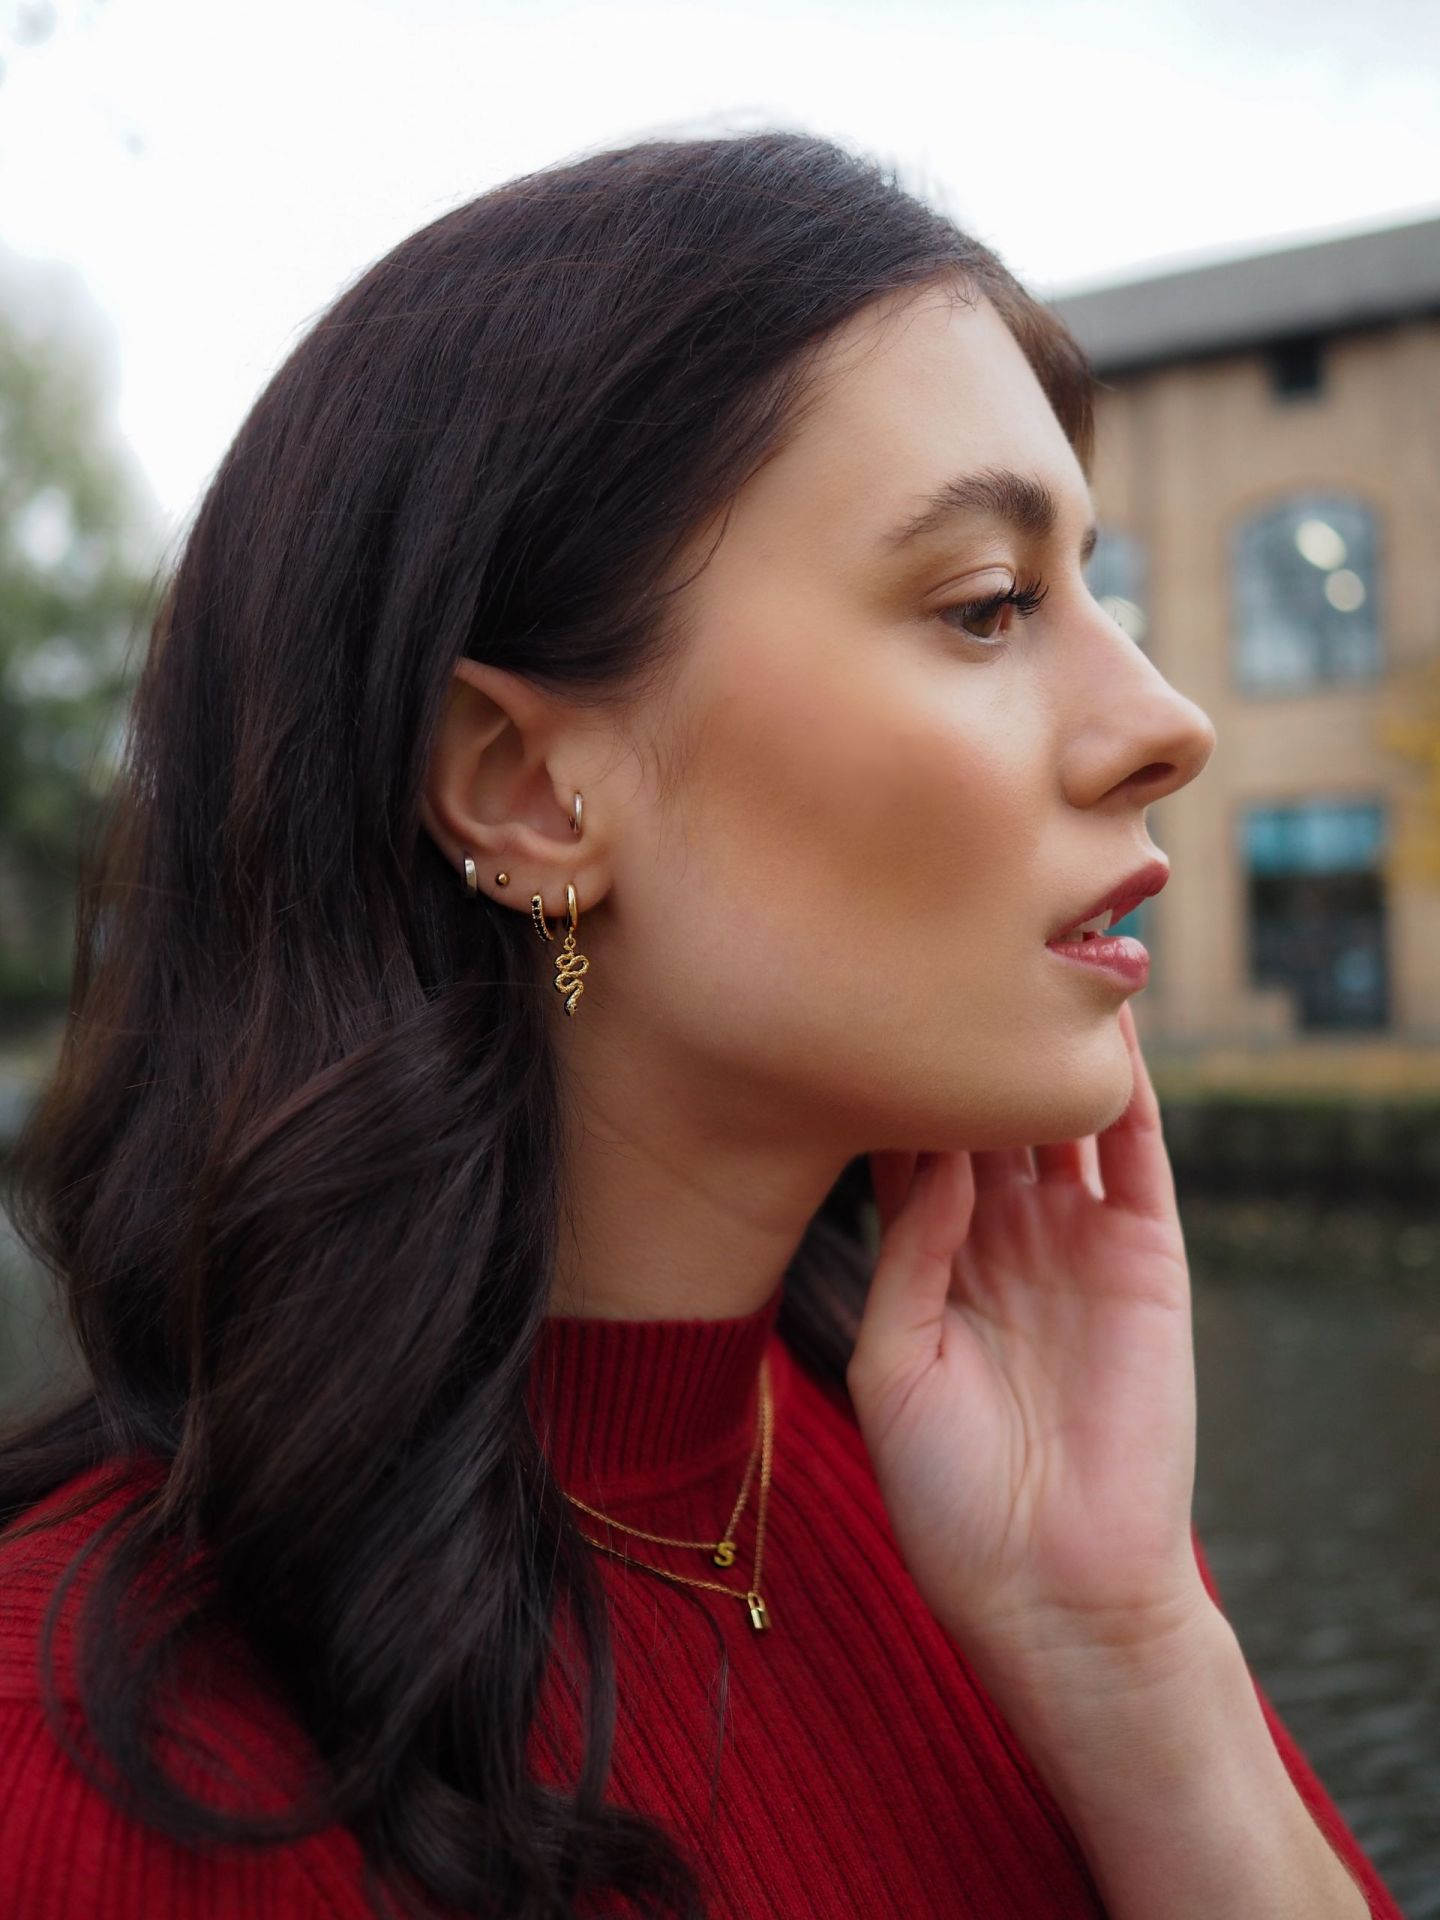 Oreilia London - Gold Plated Initial Necklace £15 - Gold Mini Metal Padlock Necklace £15 - Gold Snake Ear Party £30